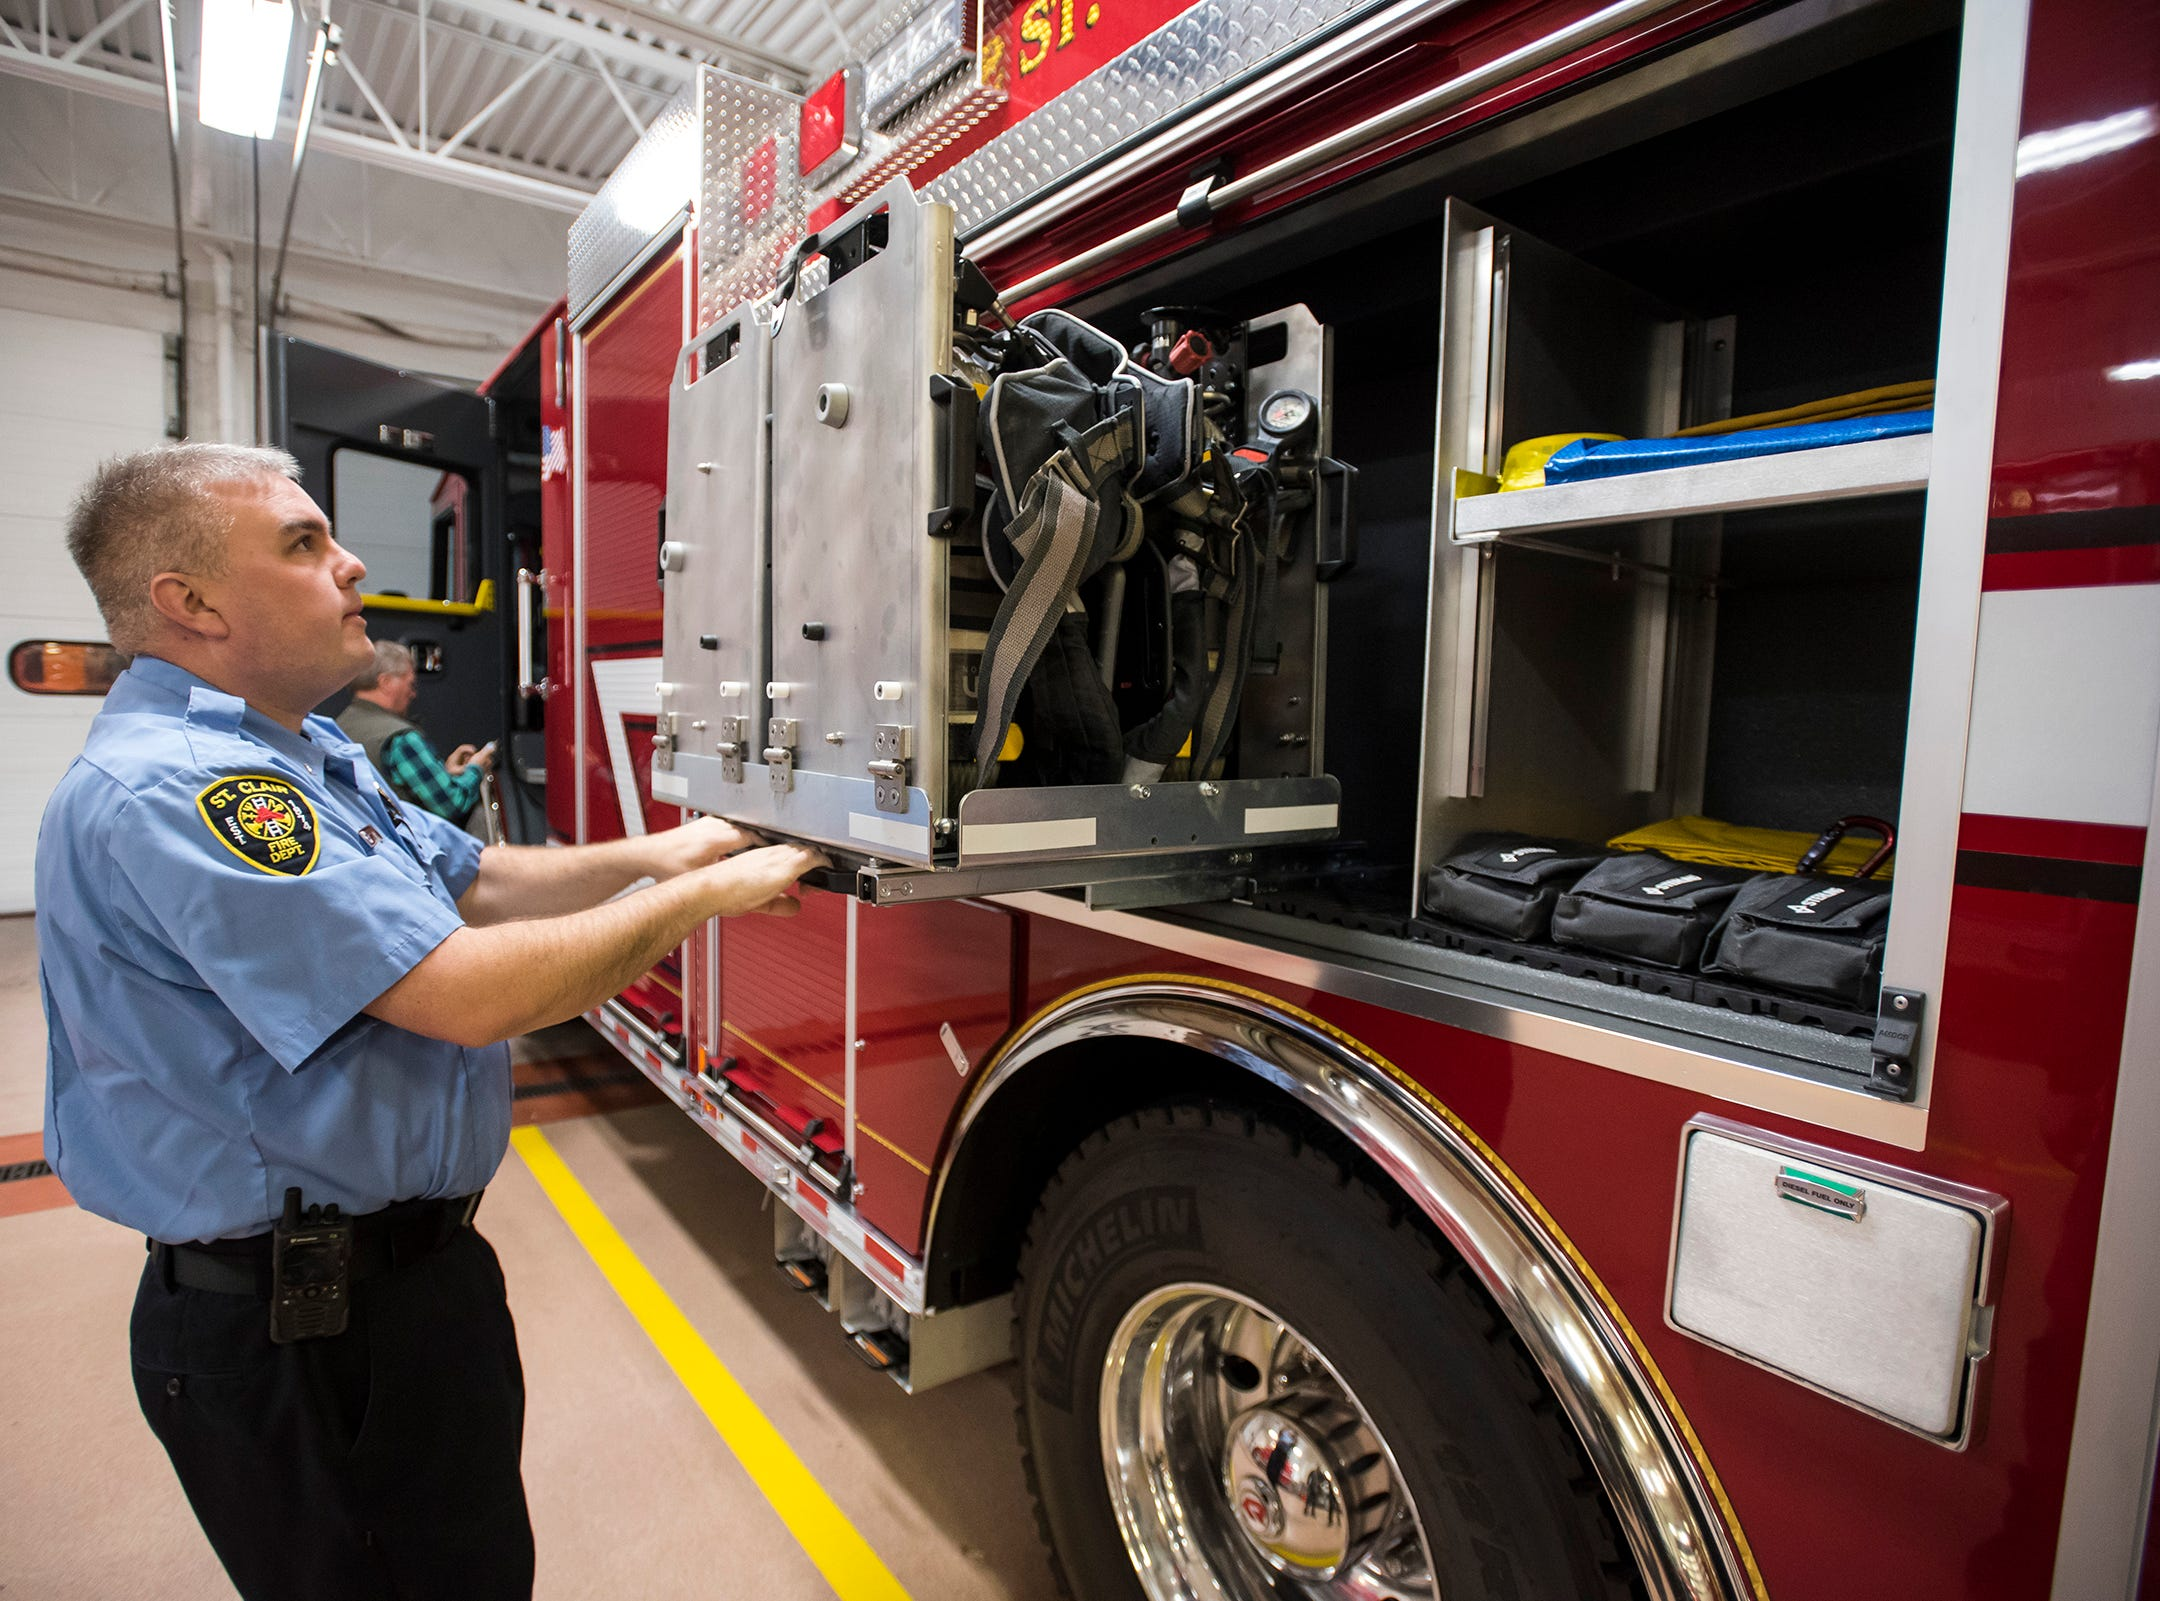 St. Clair Fire Department Lt. Nicholas Chavez slides a rack holding air tanks out of the side of the department's new truck Wednesday, Nov. 7, 2018 at the fire station. Some of the regular gear stored on the truck can be deployed with improvements, such as a slide-out rack containing air tanks that can be pulled directonly onto a standing firefighter's back.